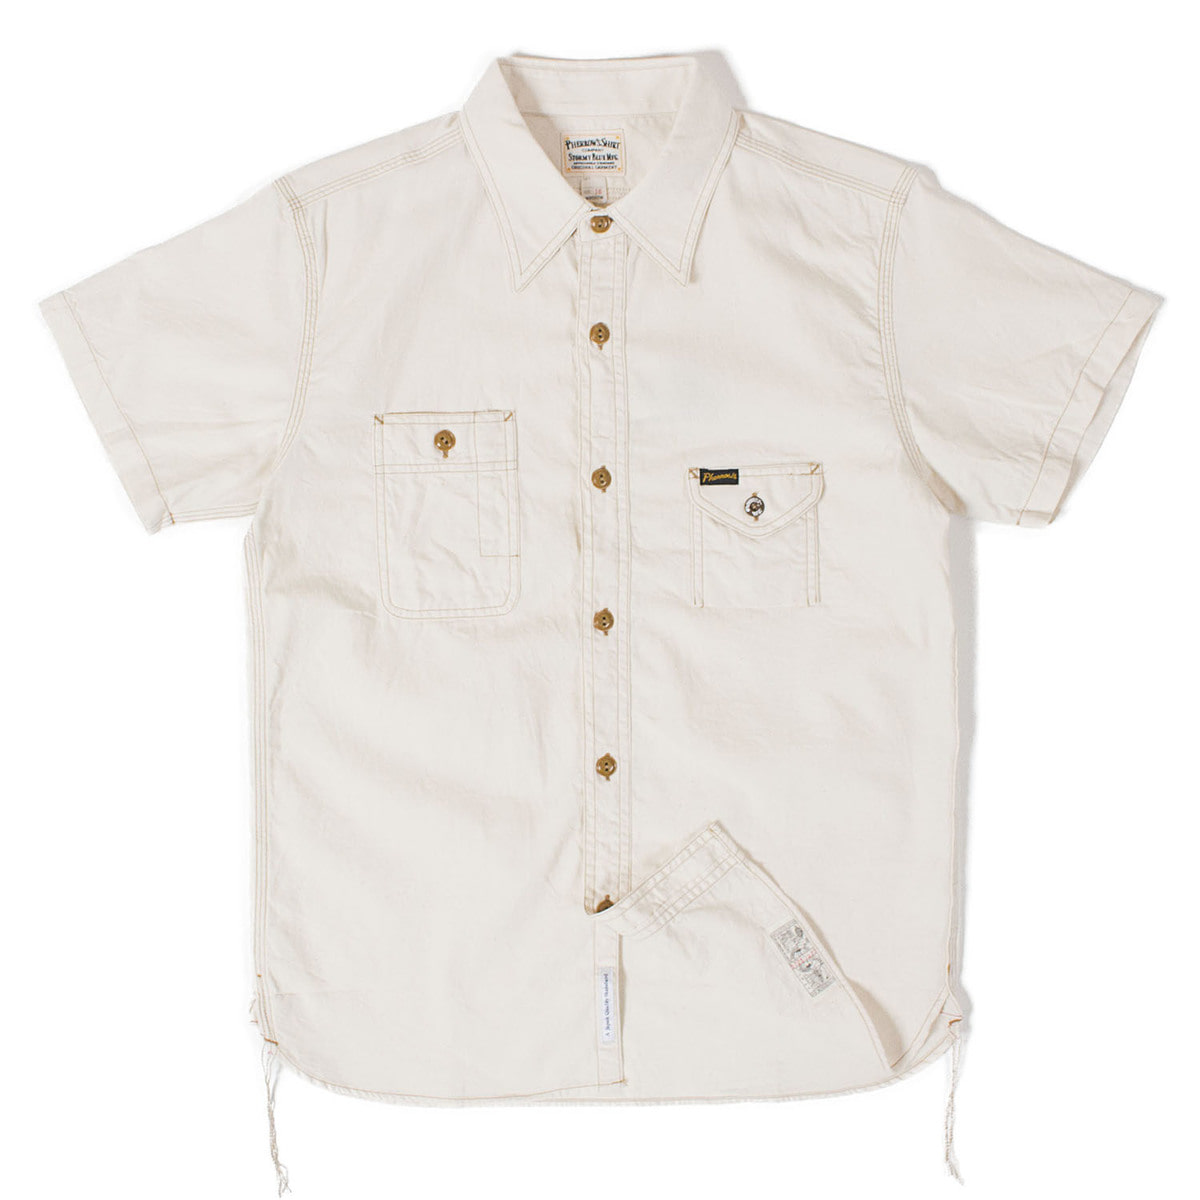 Chambray Work Shirts 750WSS (off white)